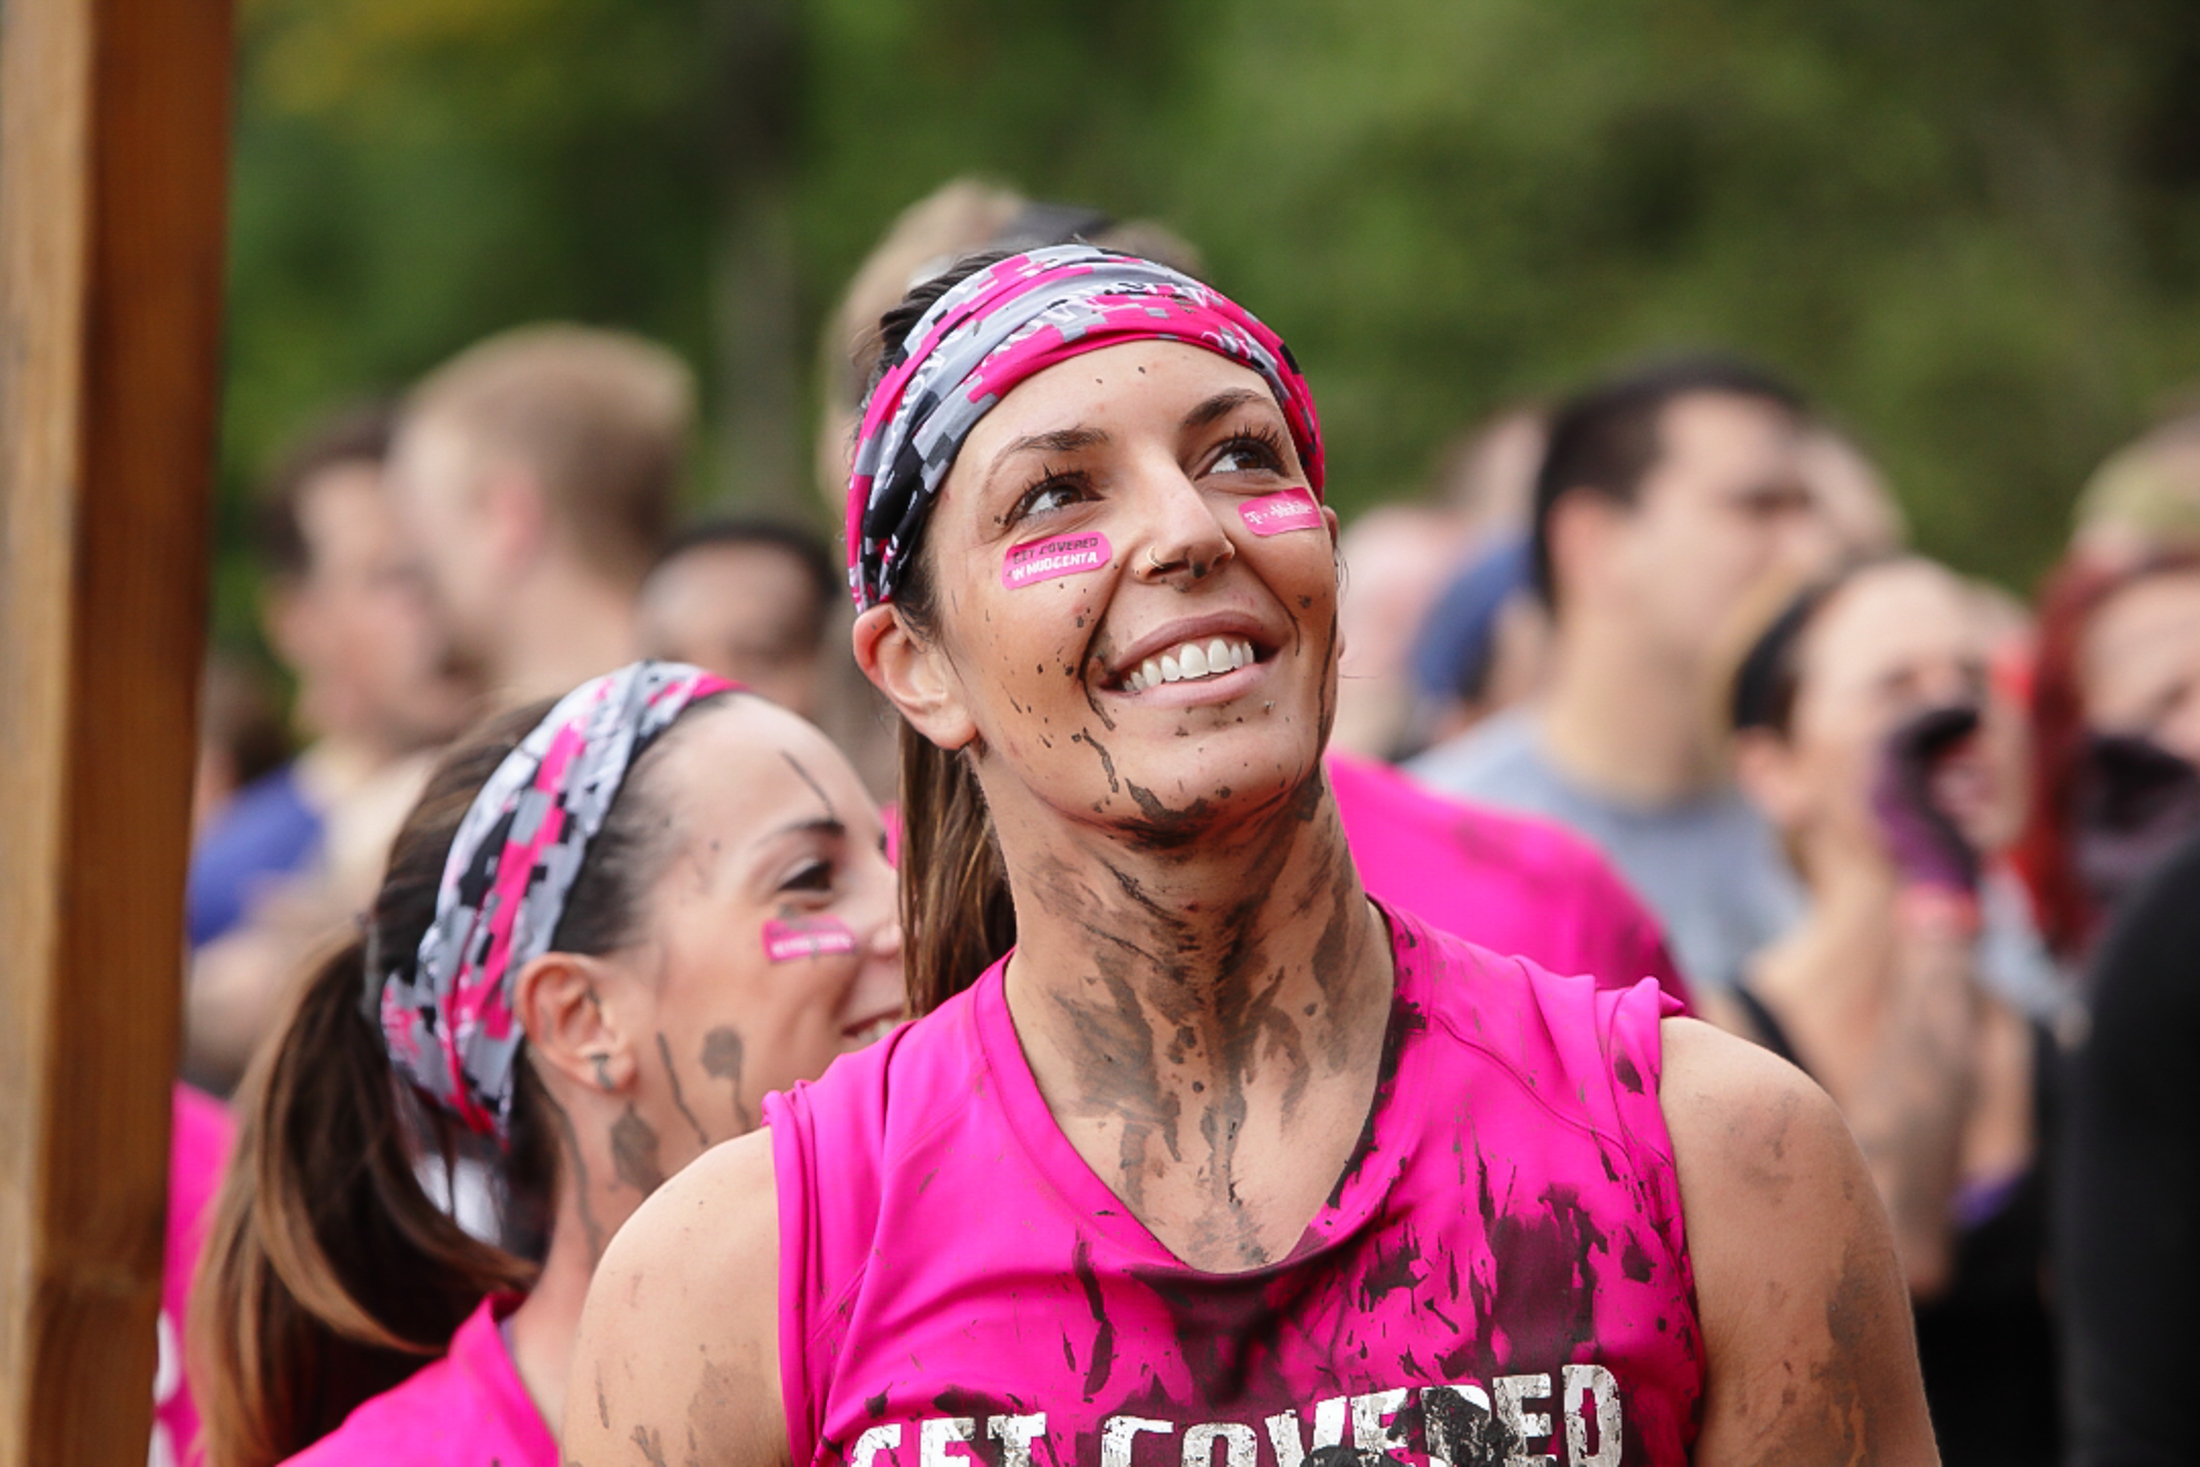 23_T-Mobile_2014-09-27_Tough-Mudder.jpg